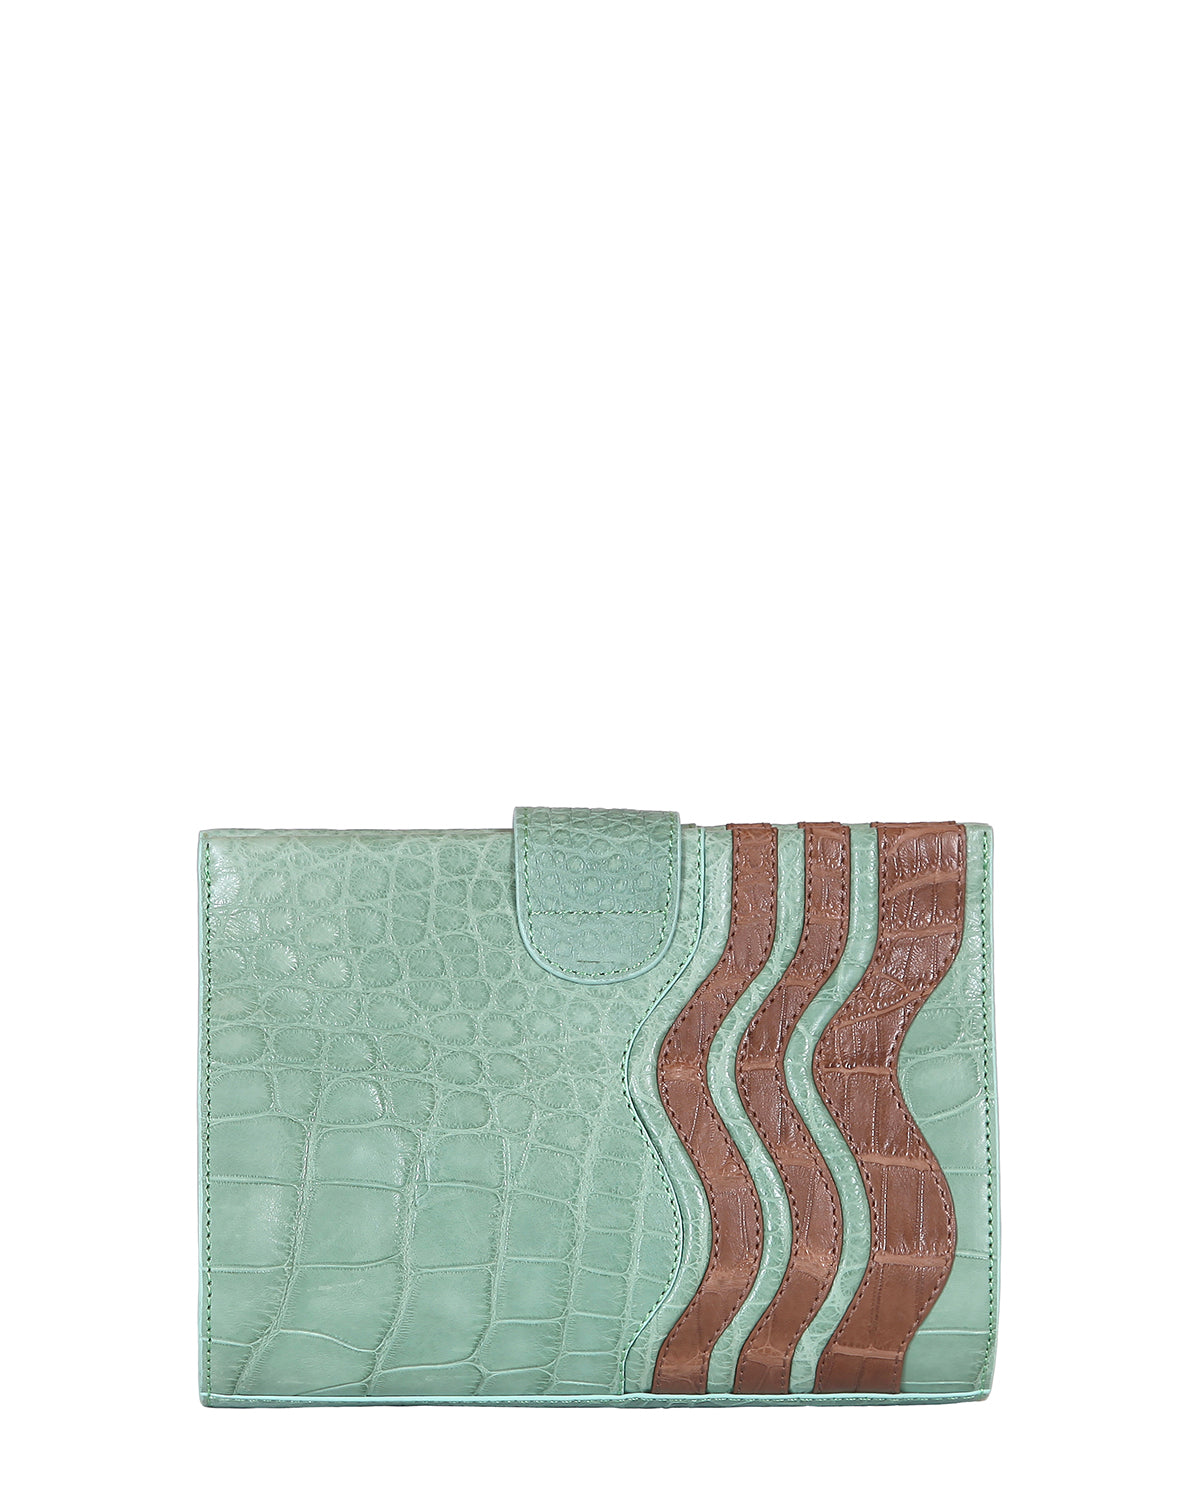 Yara Bashoor Joey Clutch Handbag Mint Green Brown Genuine American Alligator Back View